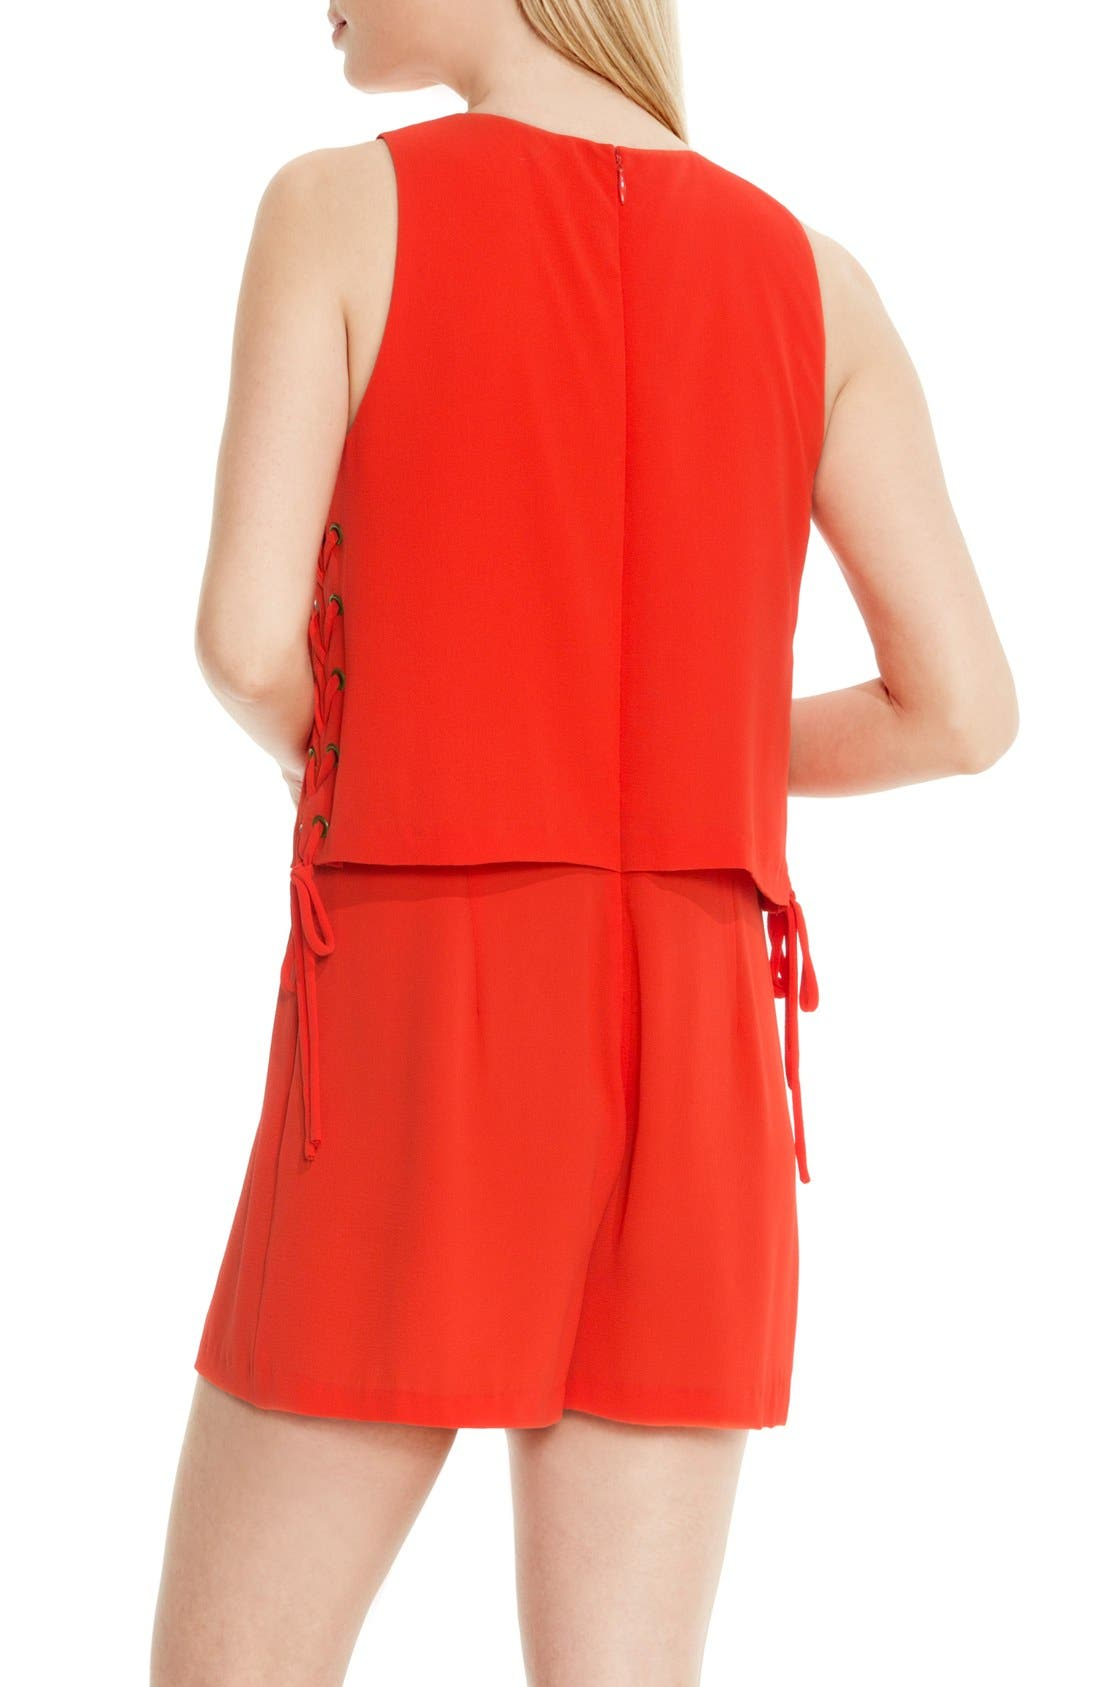 Alternate Image 3  - Vince Camuto Lace-Up Detail Sleeveless Romper